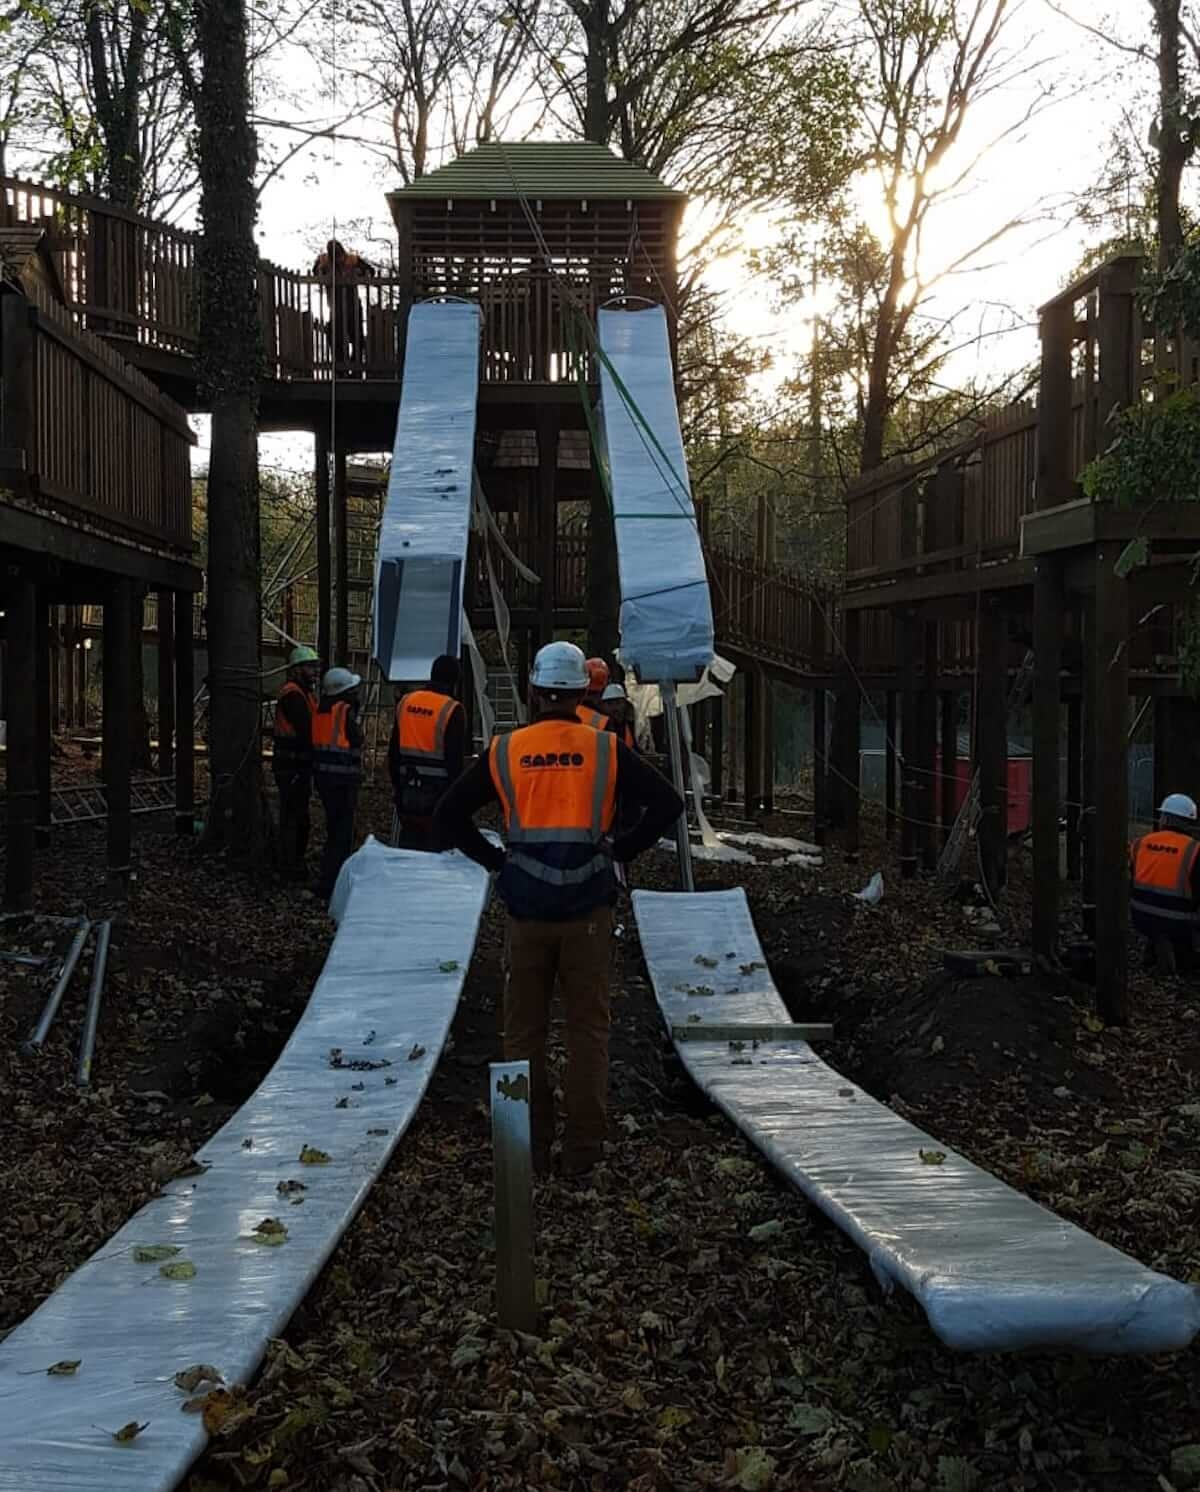 Twin racing slides ready for action at Dalkeith